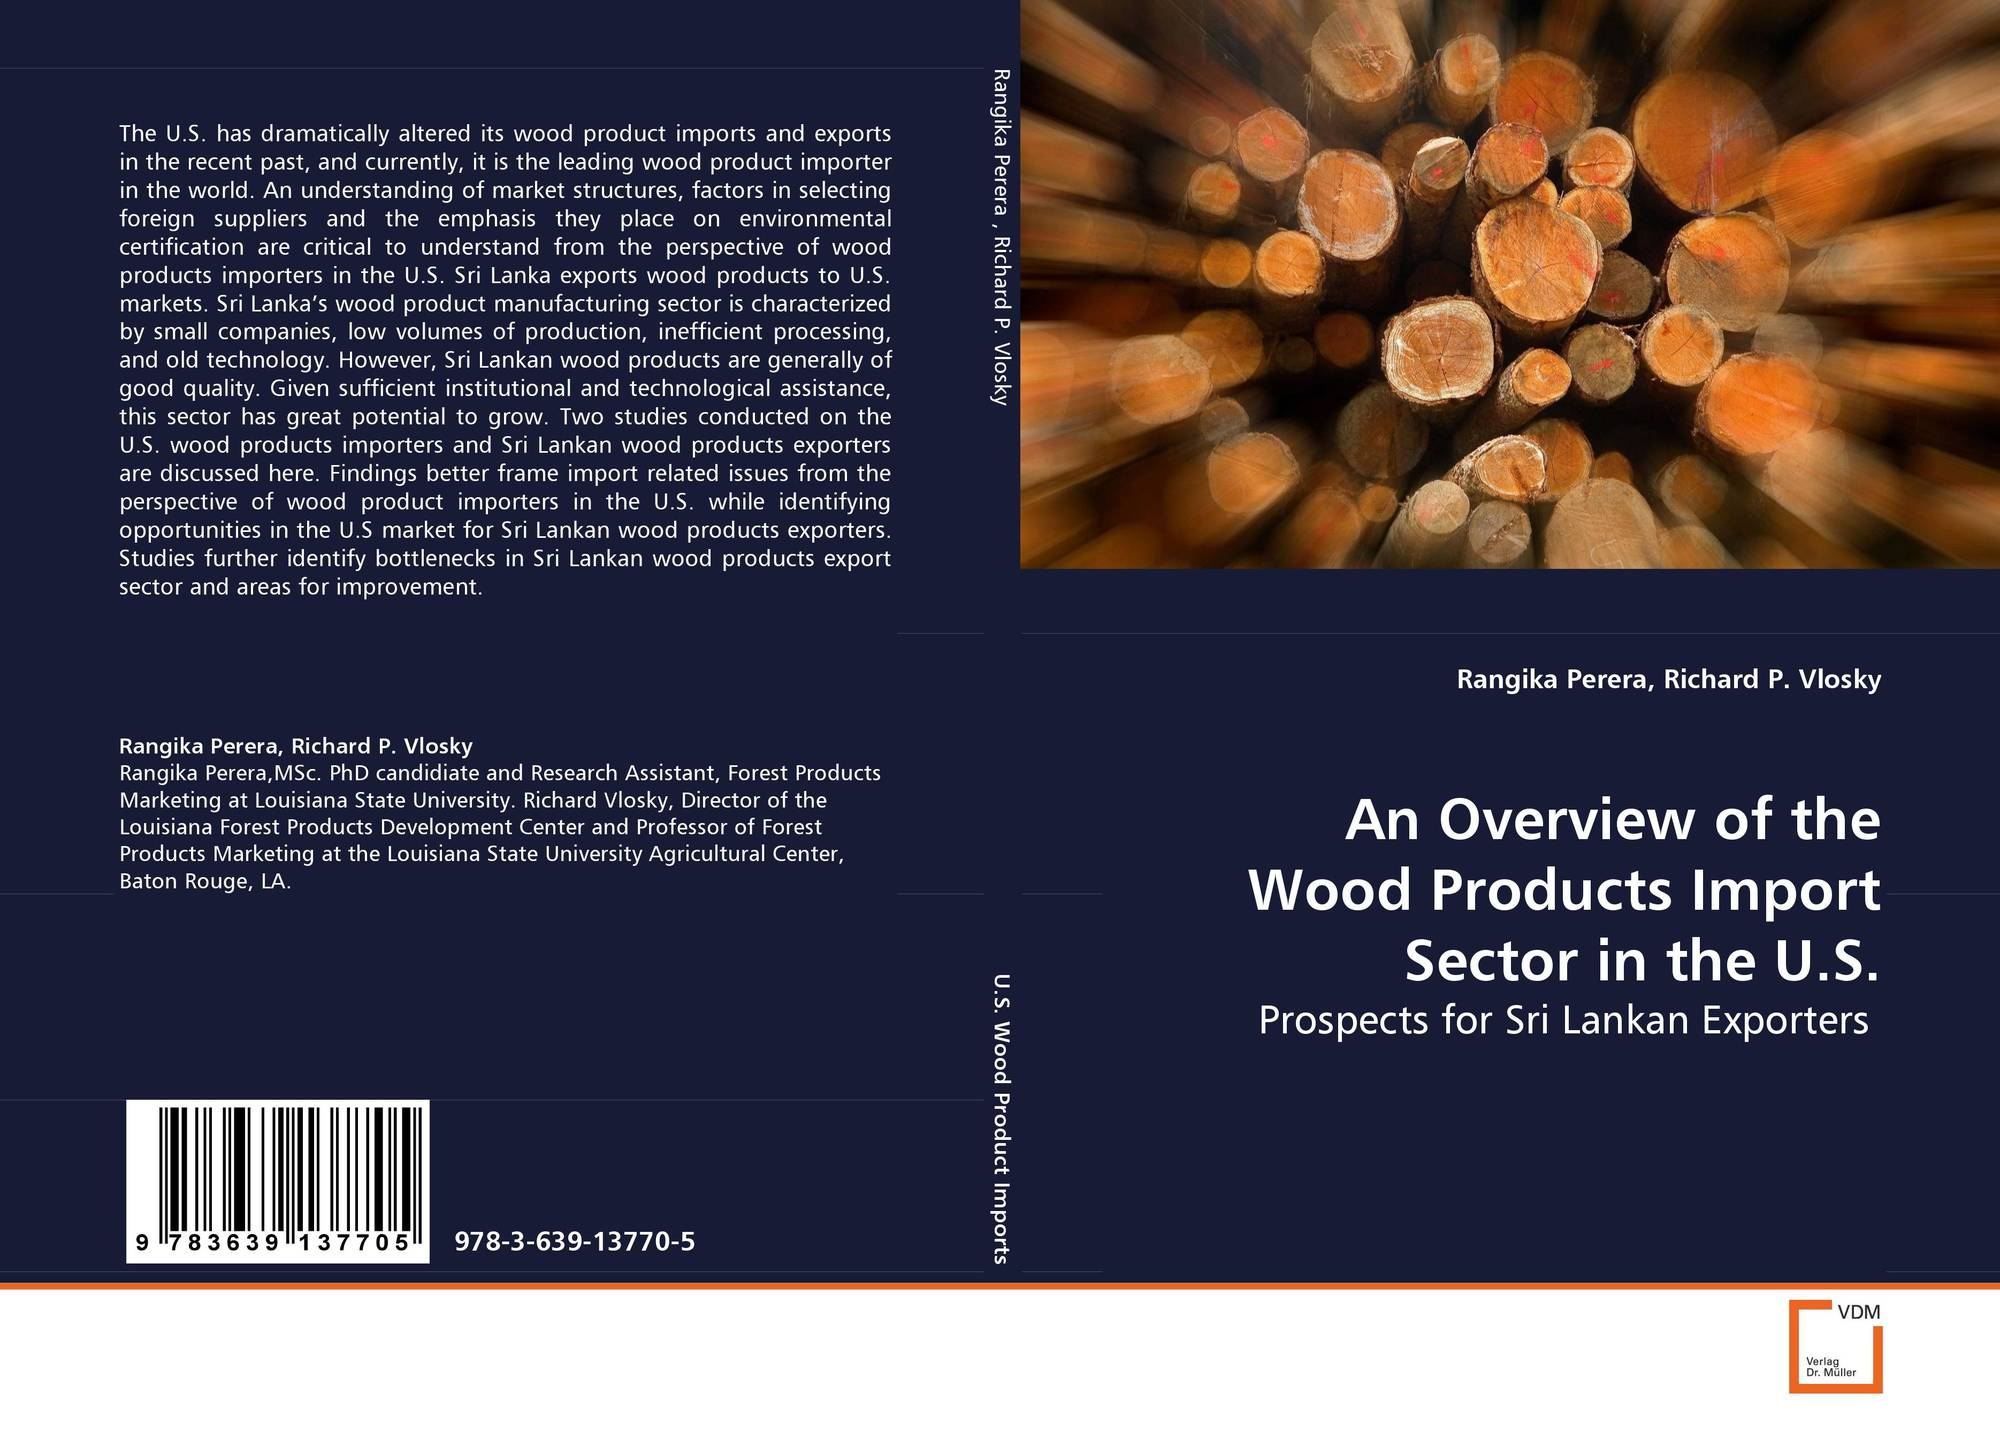 An Overview of the Wood Products Import Sector inthe U S